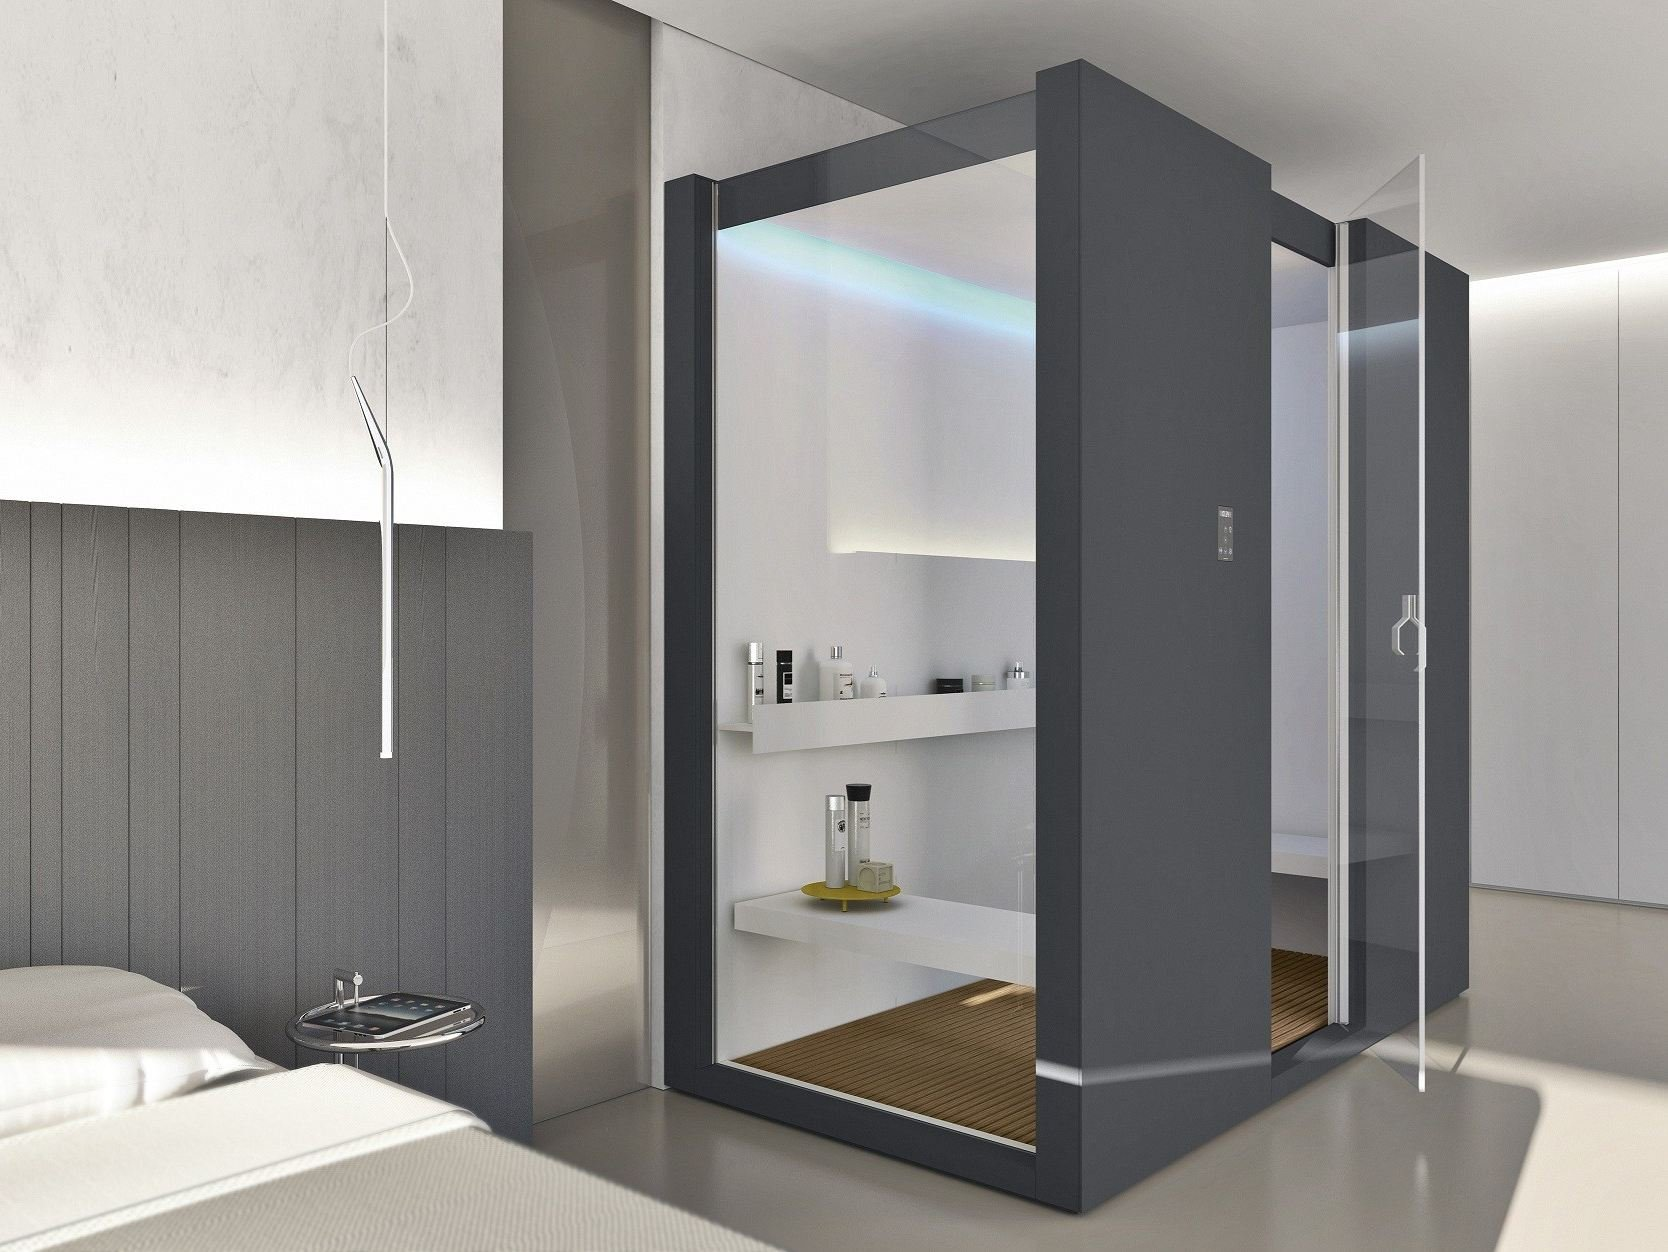 dampfbad mit dusche h one by makro design giulio gianturco. Black Bedroom Furniture Sets. Home Design Ideas